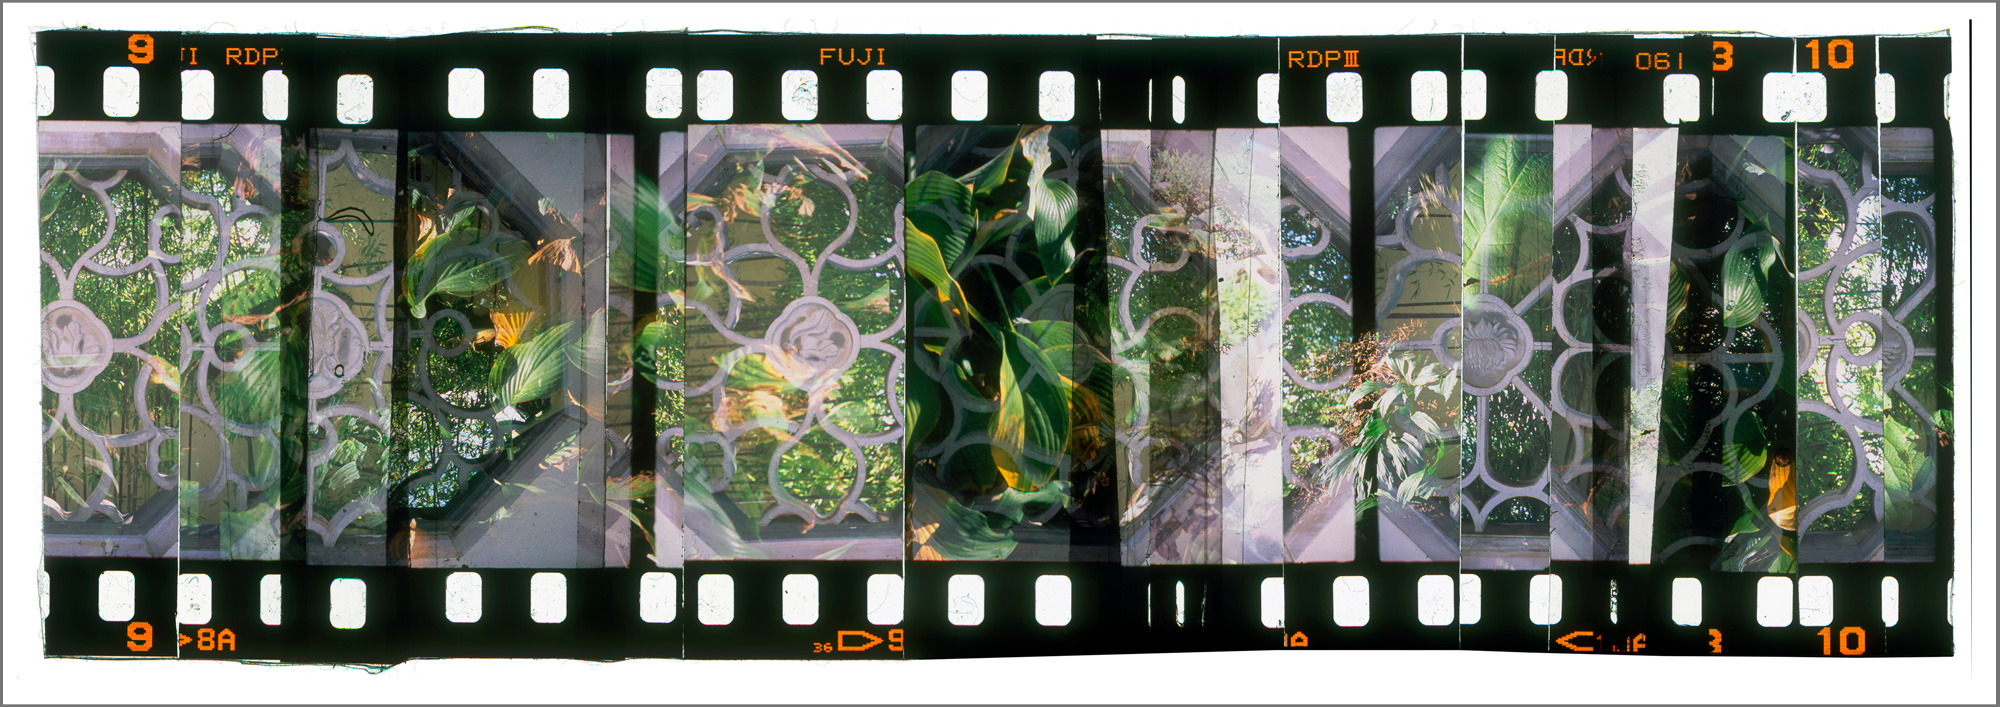 """ARBORETUM GARDEN 2,   ACRYLIC MOUNTED PRINT FROM 35MM TRANSPARENCY FILM COMPOSITION, 17"""" x 48"""", EDITION OF 5"""